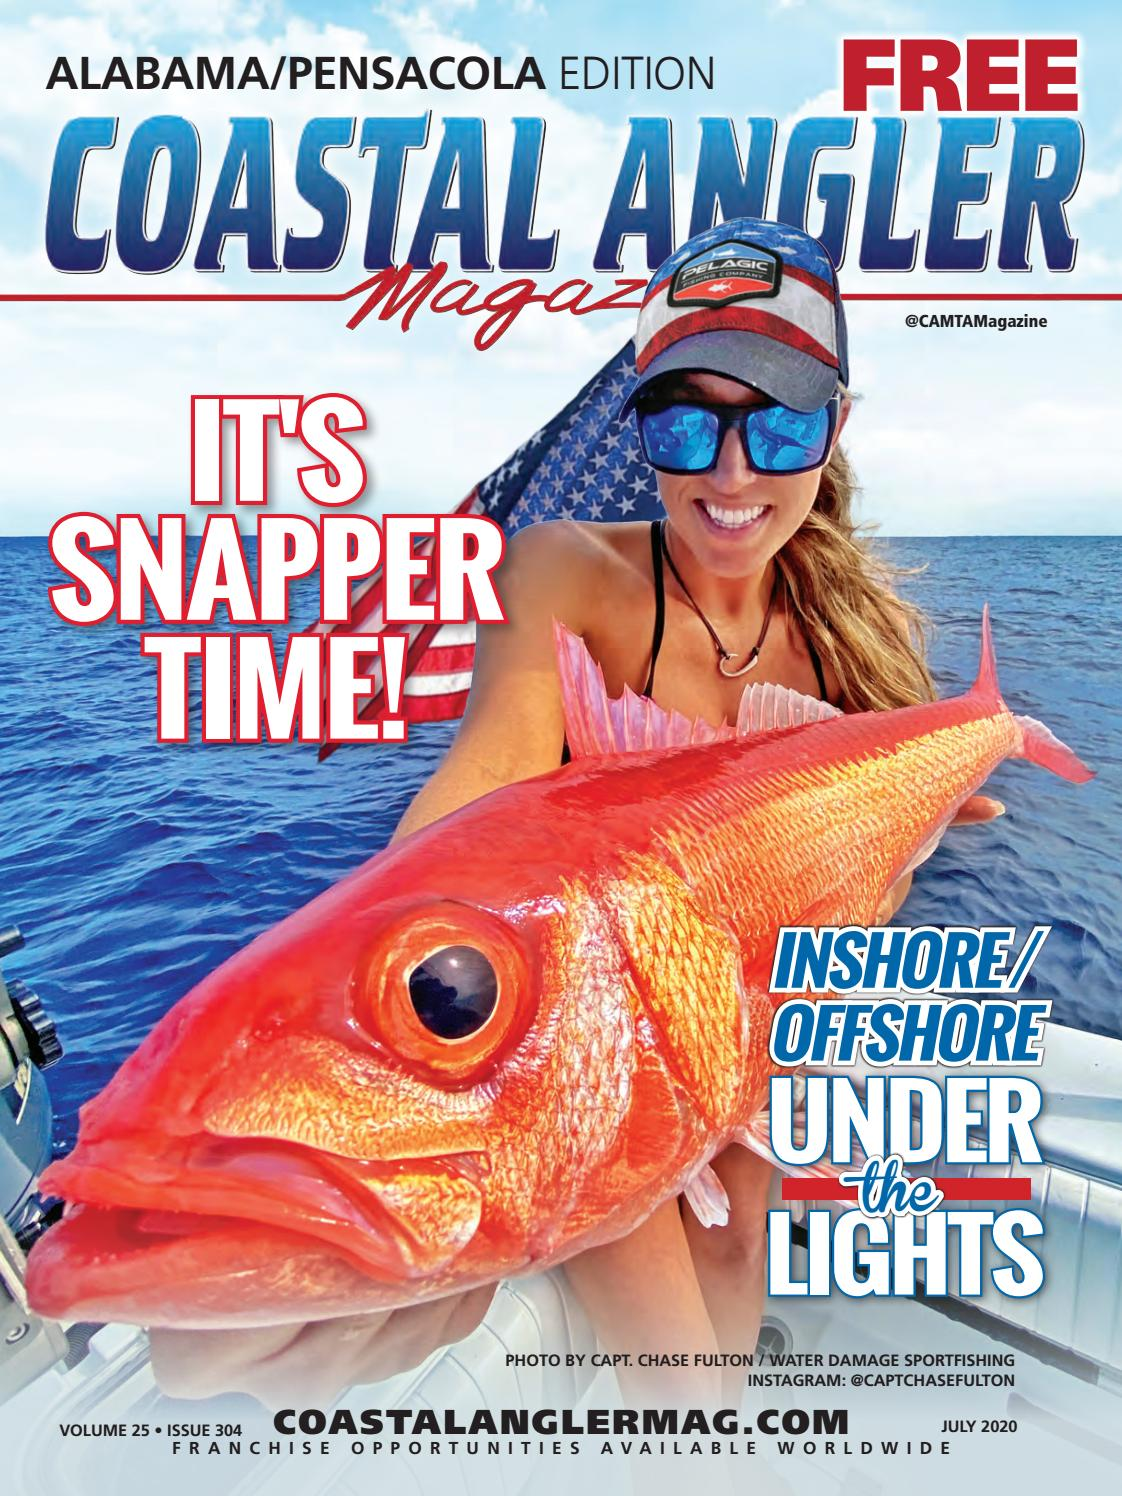 Coastal Angler Magazine | July 2020 | Alabama/Pensacola Edition by Coastal  Angler Magazine - issuu